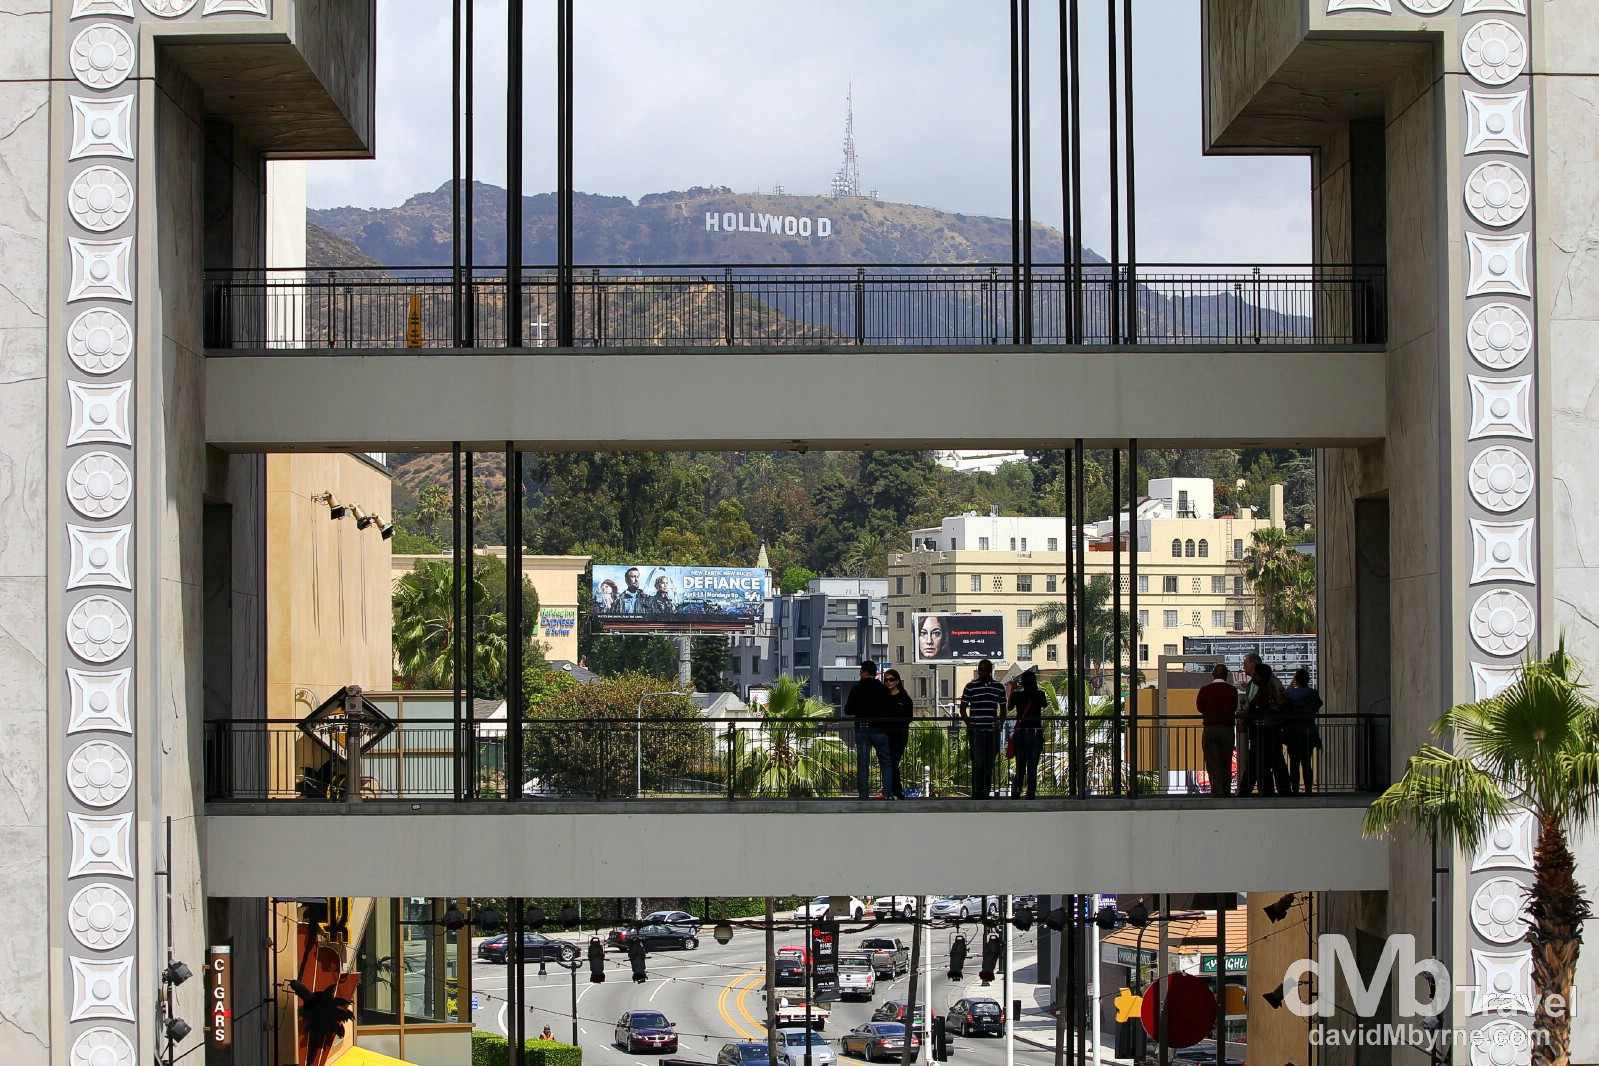 Viewing the Hollywood Sign from the walkways at the Hollywood & Highland Center, Hollywood Boulevard, Los Angeles, California, USA. April 15th 2013.